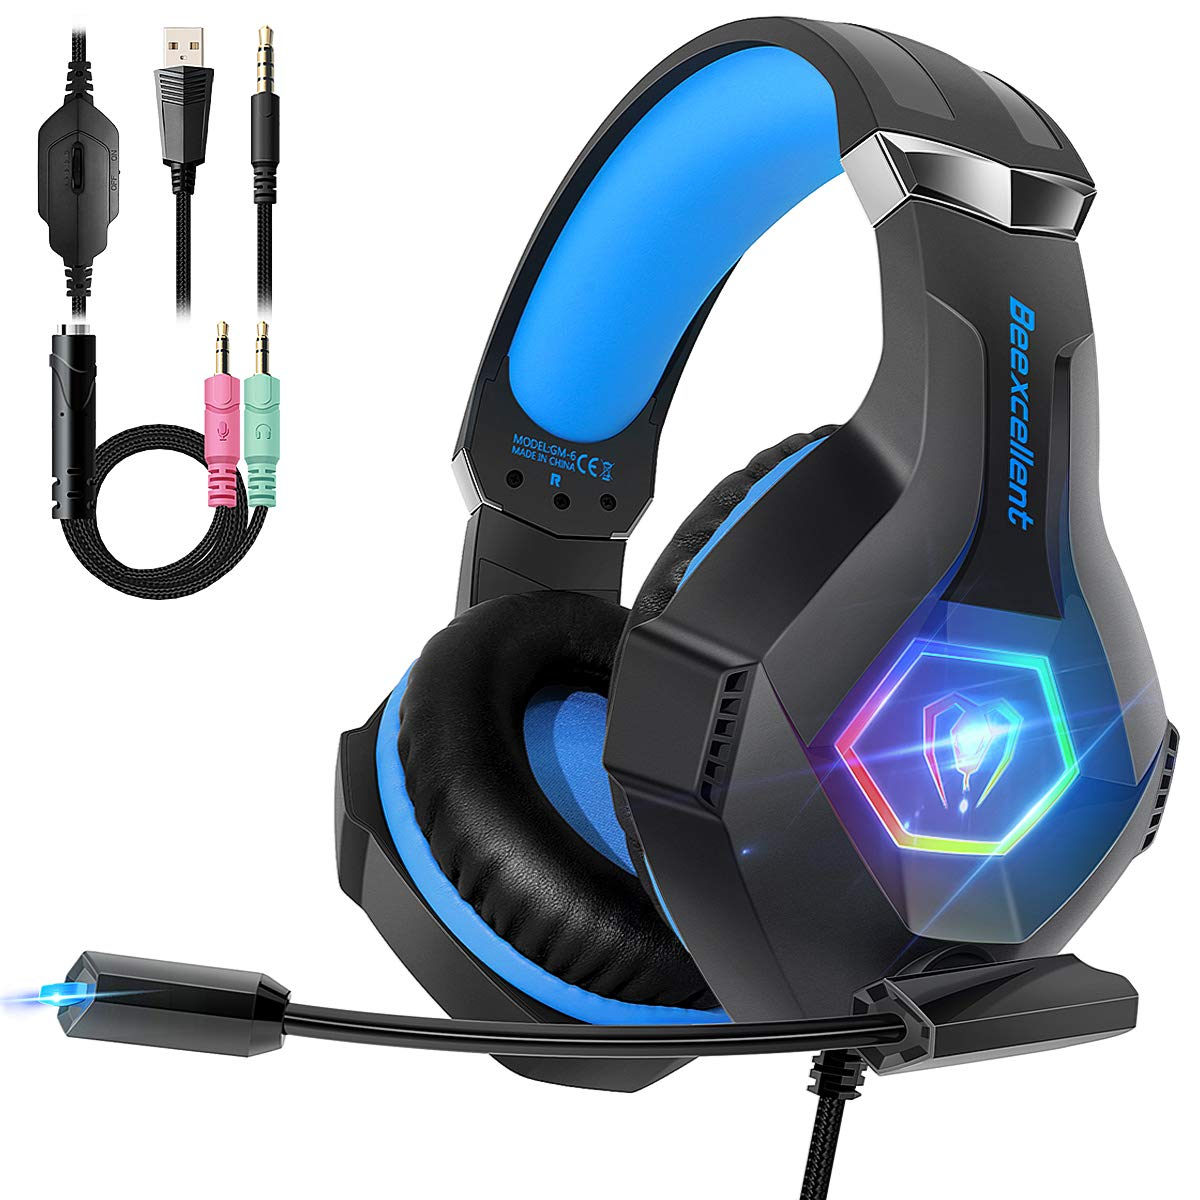 Beexcellent Cascos PS4 con Micrófono Flexible para Xbox One PC Nintendo PS4 Tableta Laptop, Auriculares con Premium Stereo, Orejeras Acolchadas Ligero Cómodo y Diadema Ajustable, Iluminación RGB product image